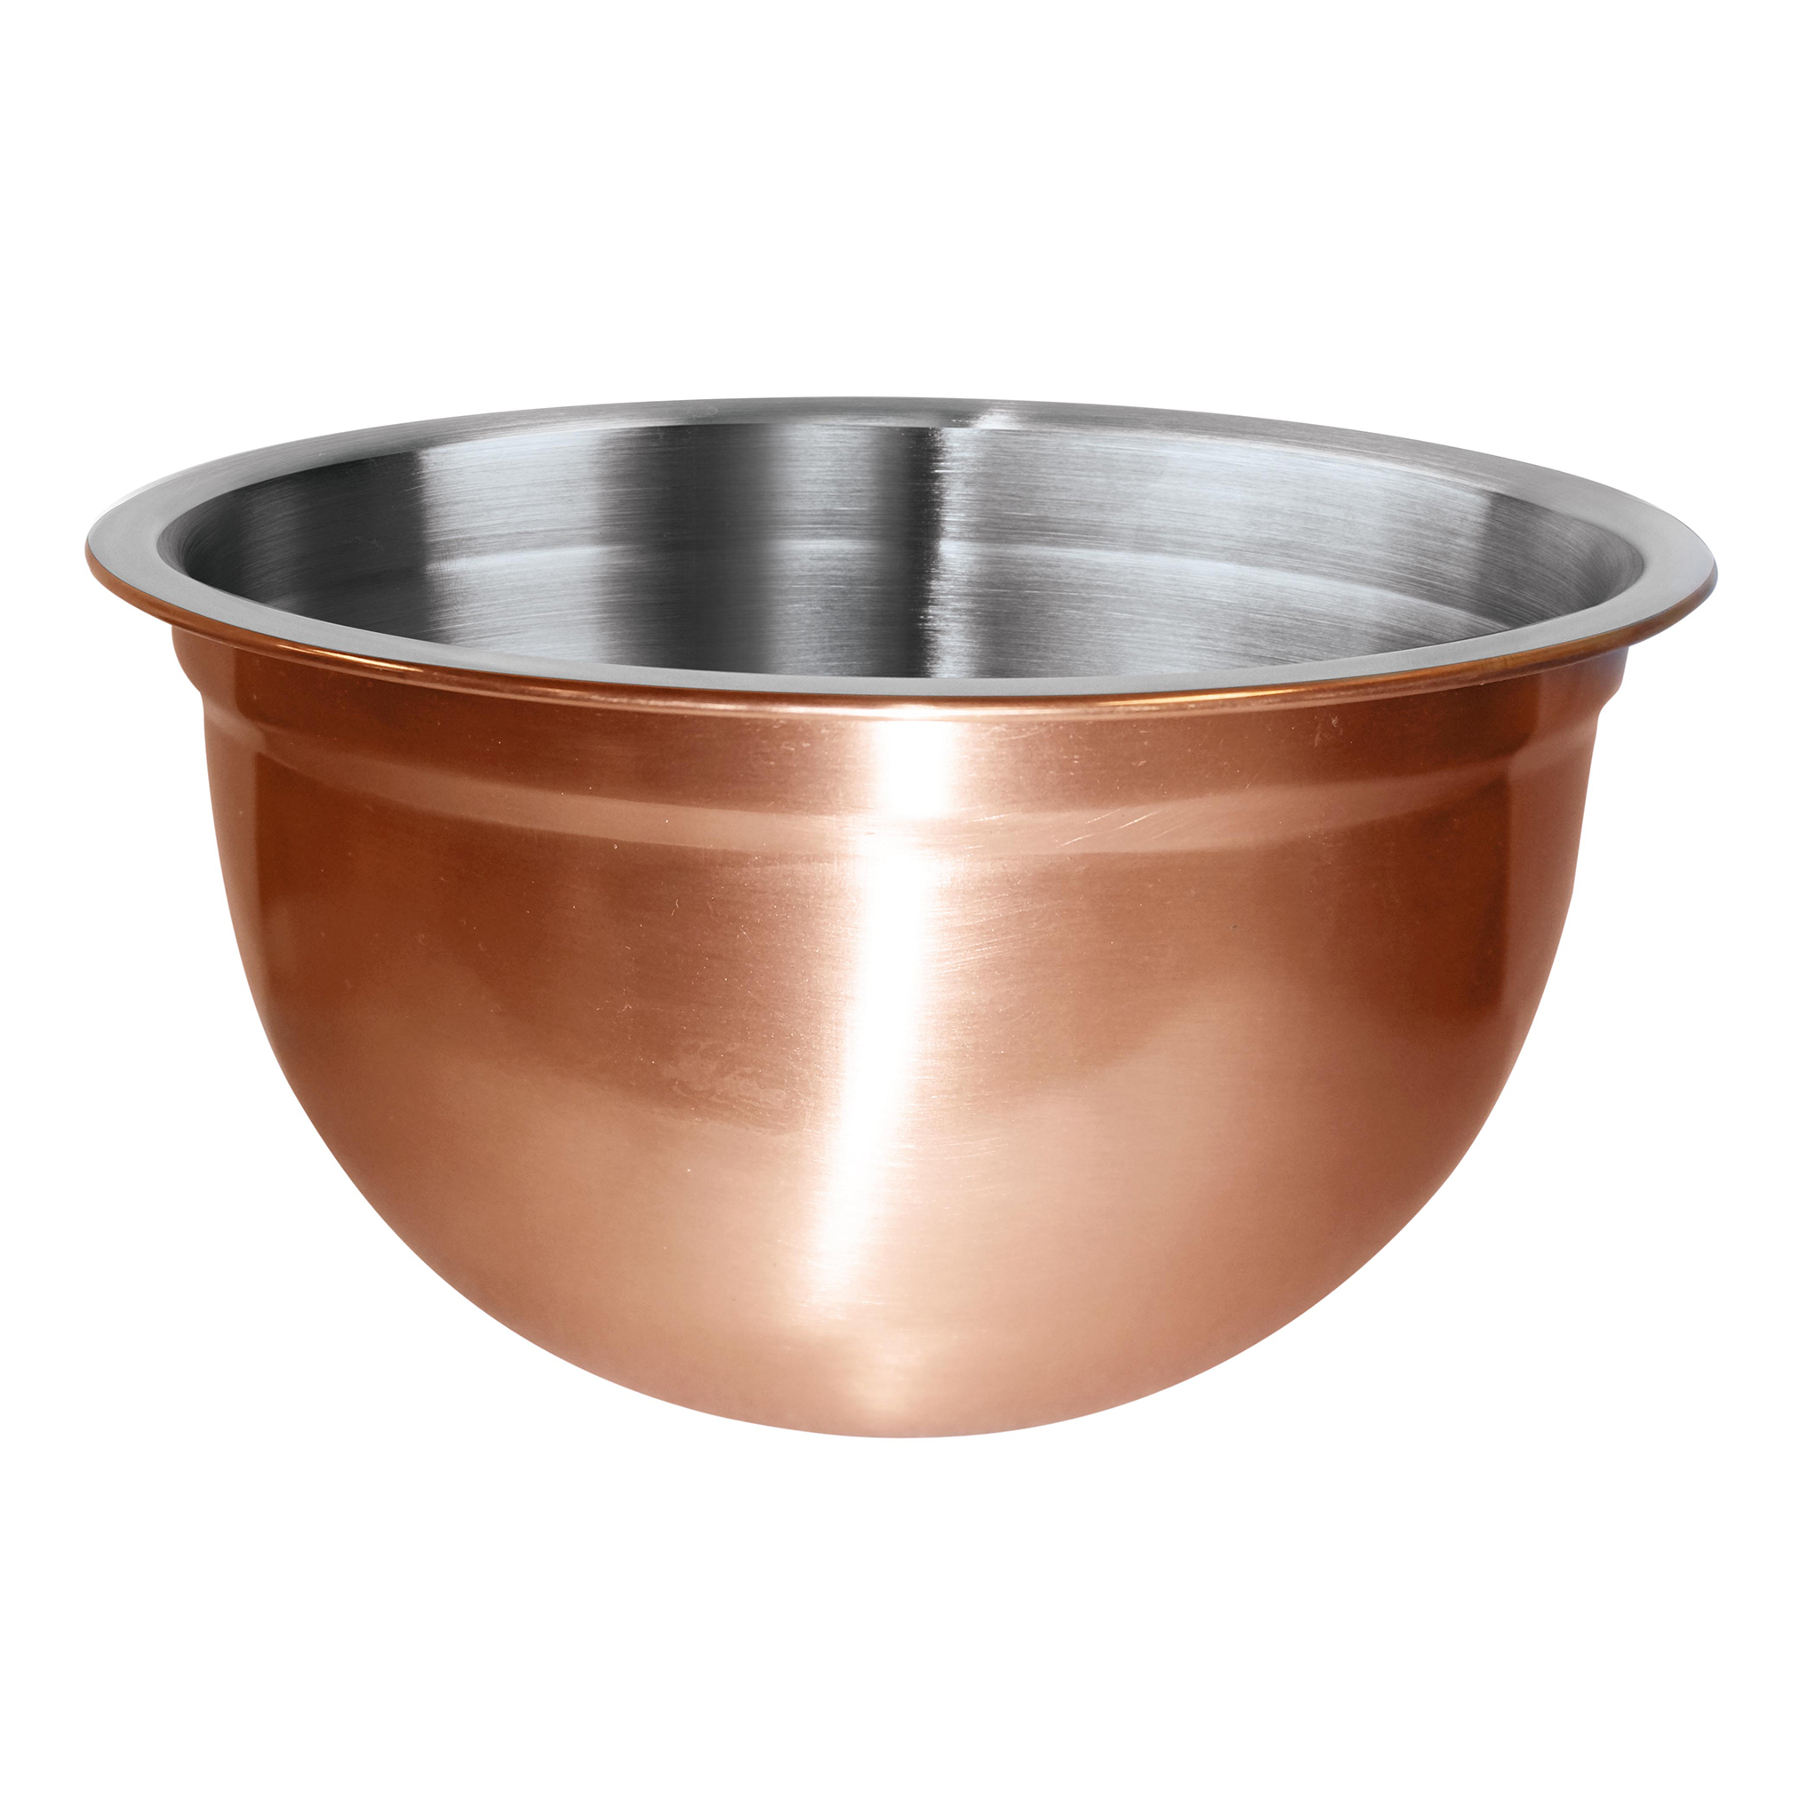 Oggi Copper Plated Stainless Steel 1.5 Quart Mixing Bowl